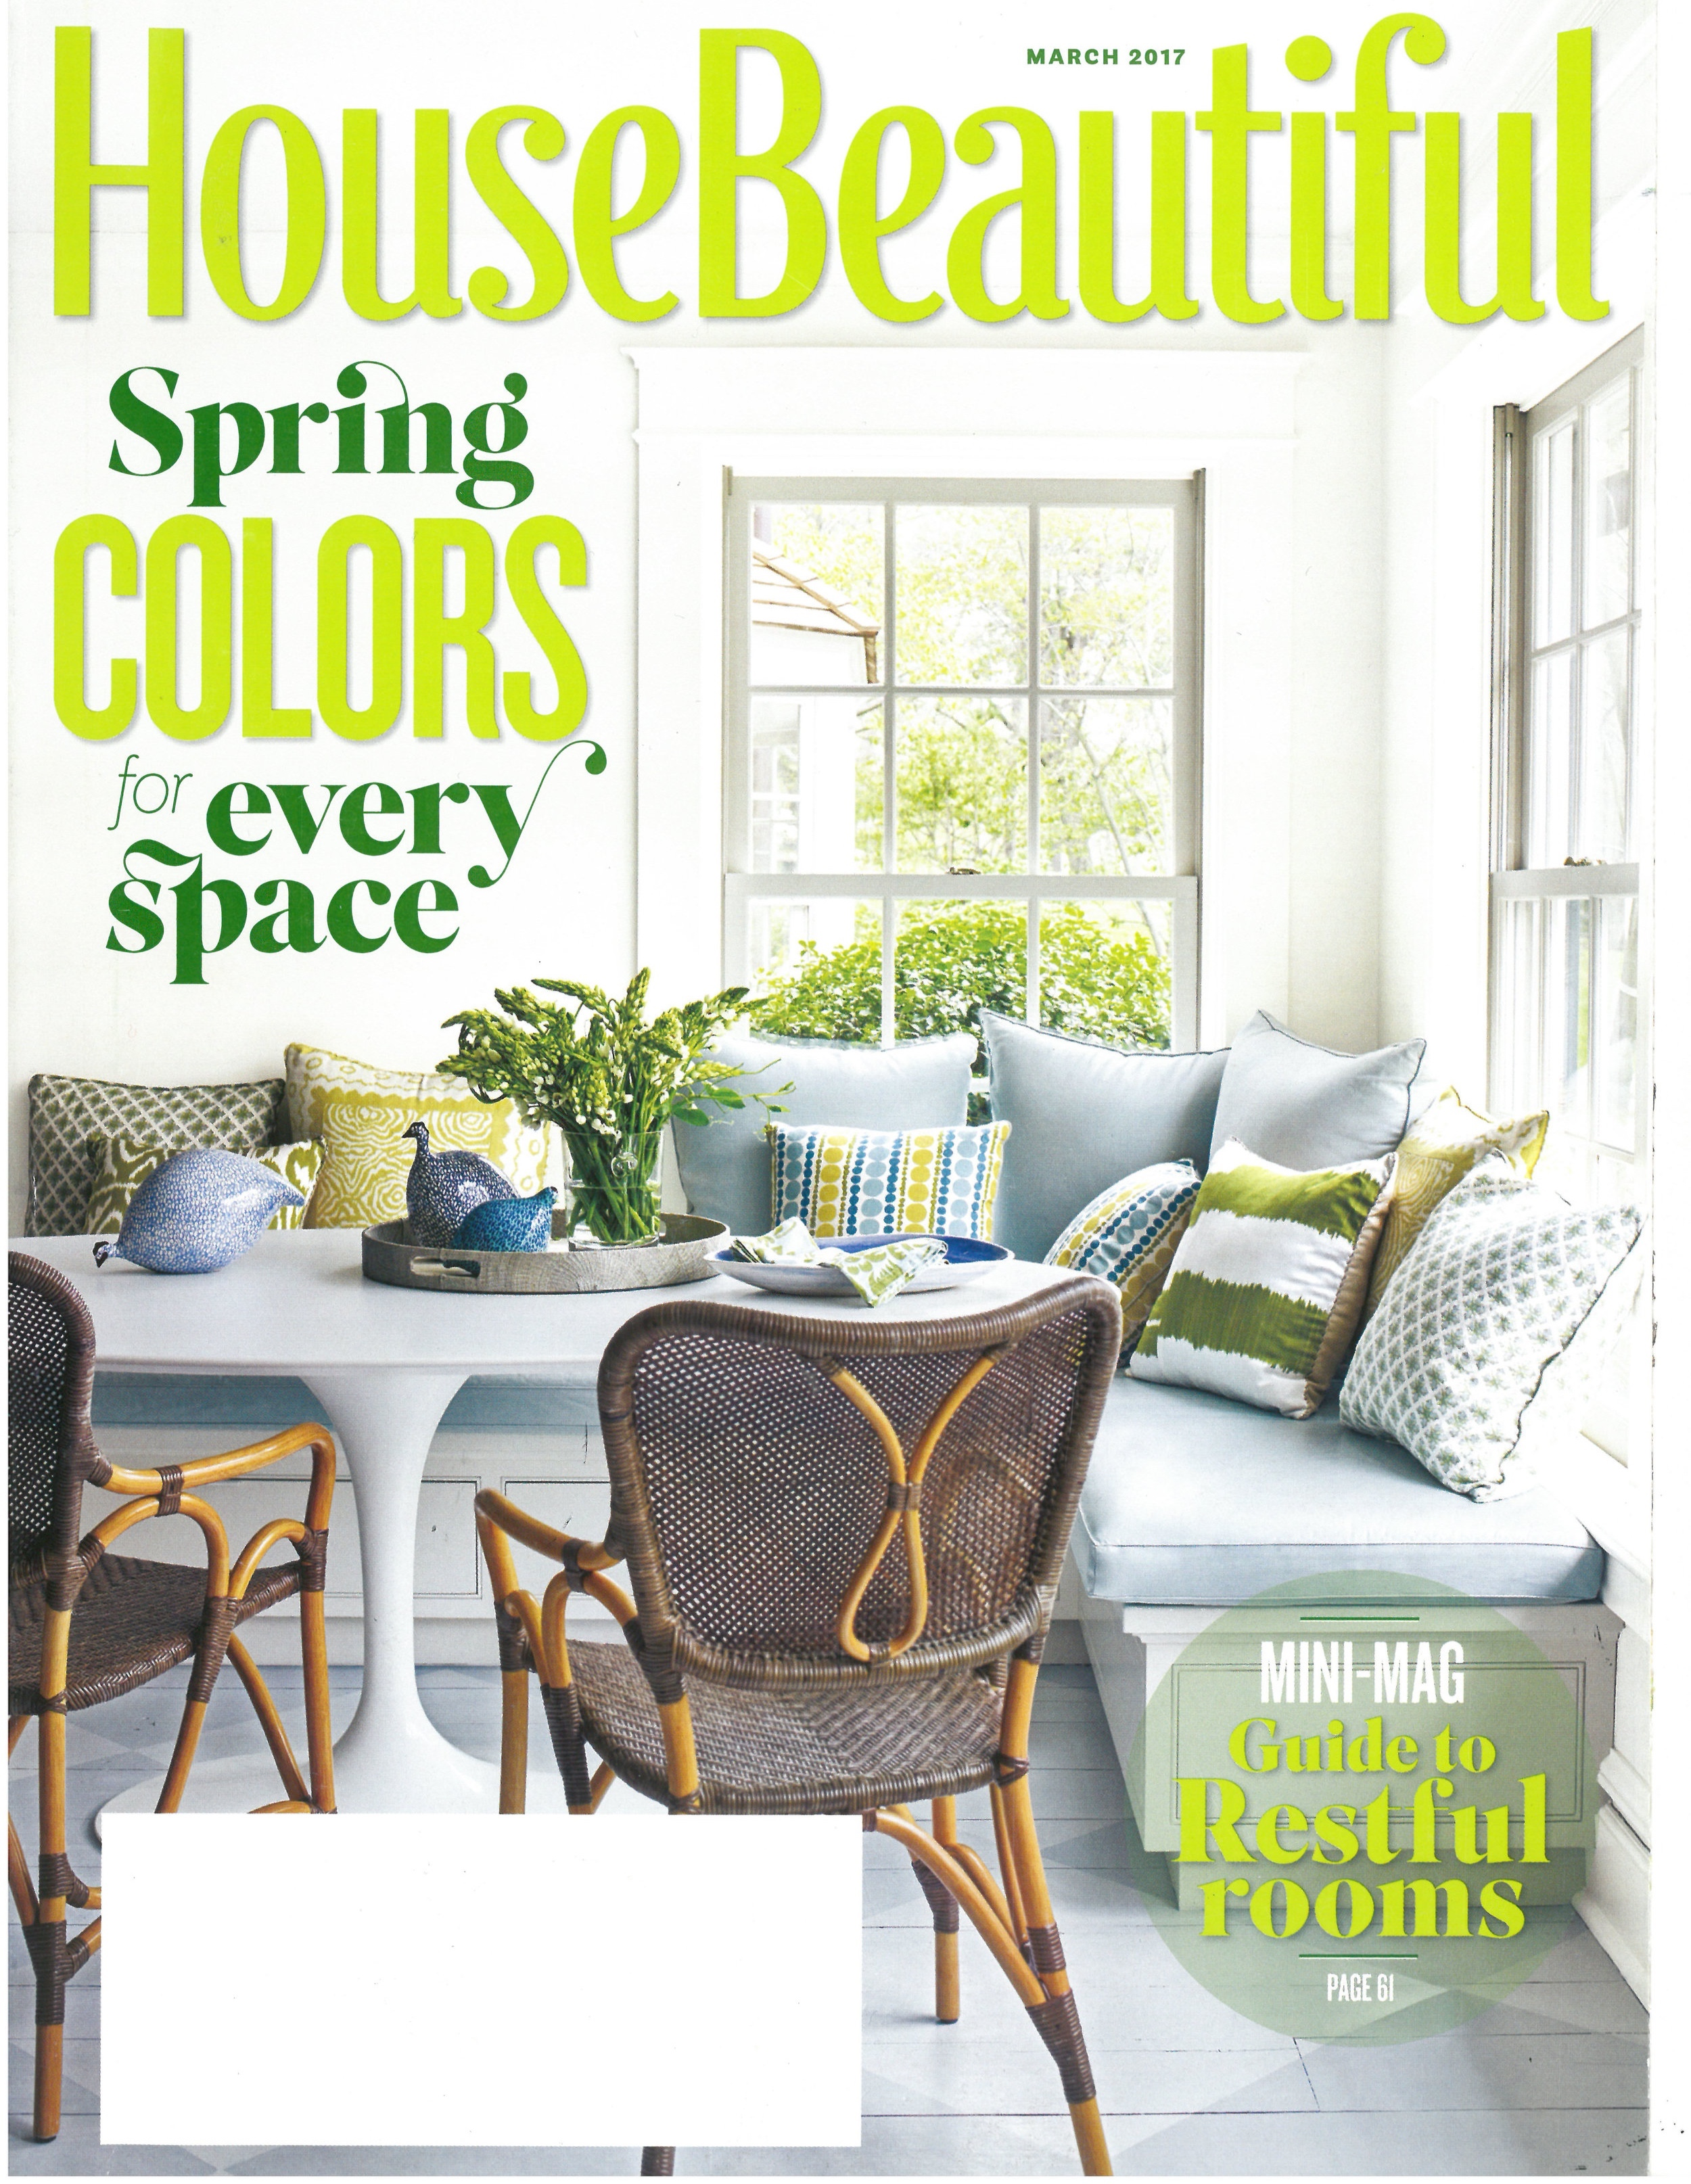 House Beautiful, March 2017